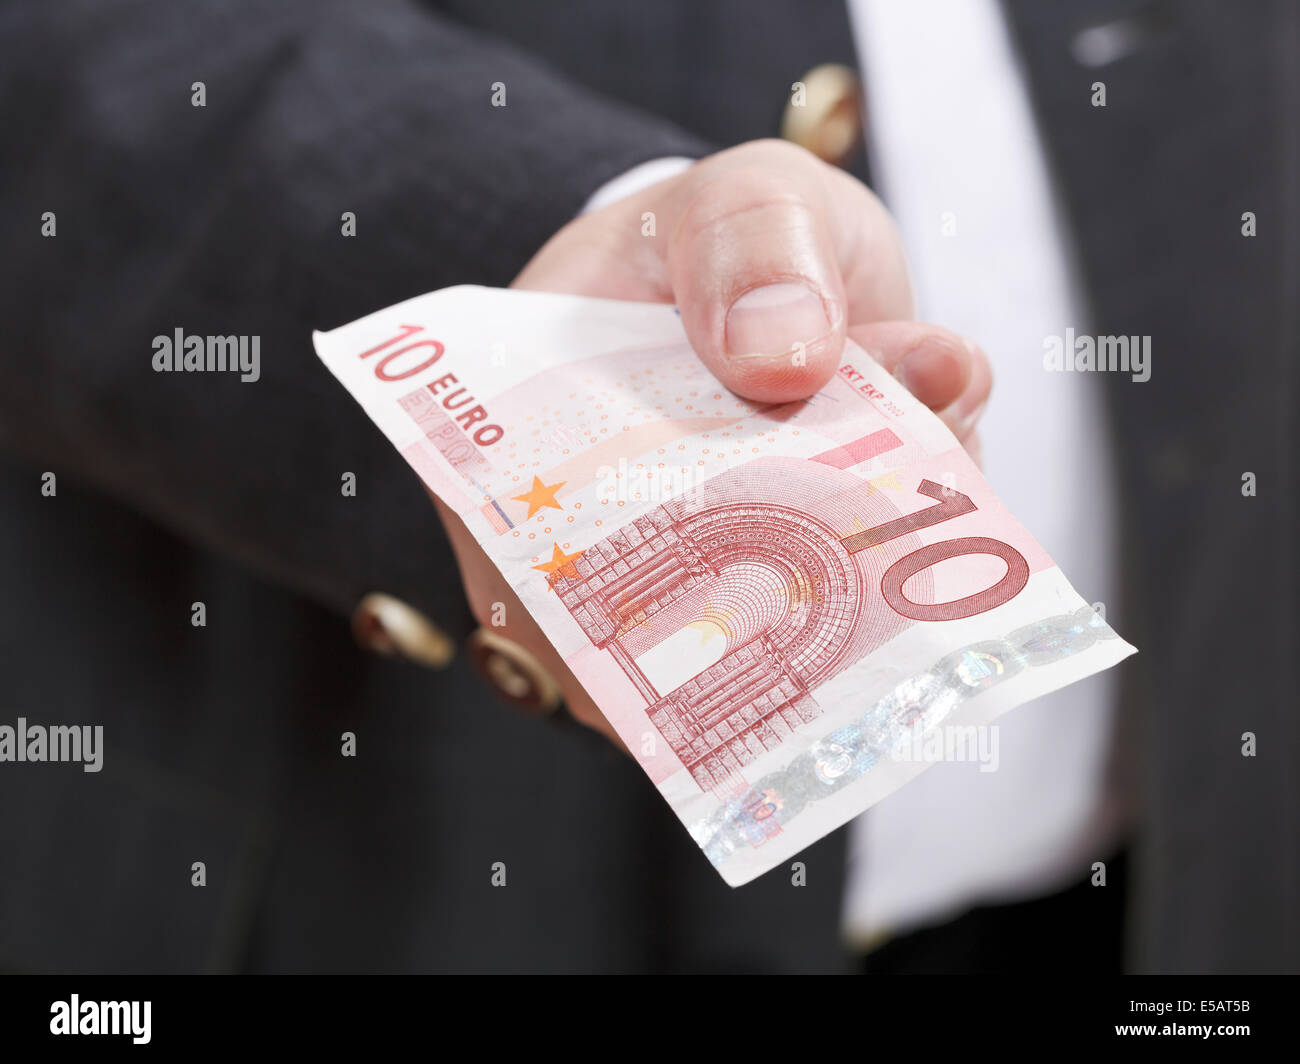 front view of ten euro banknote in male hand close up - Stock Image